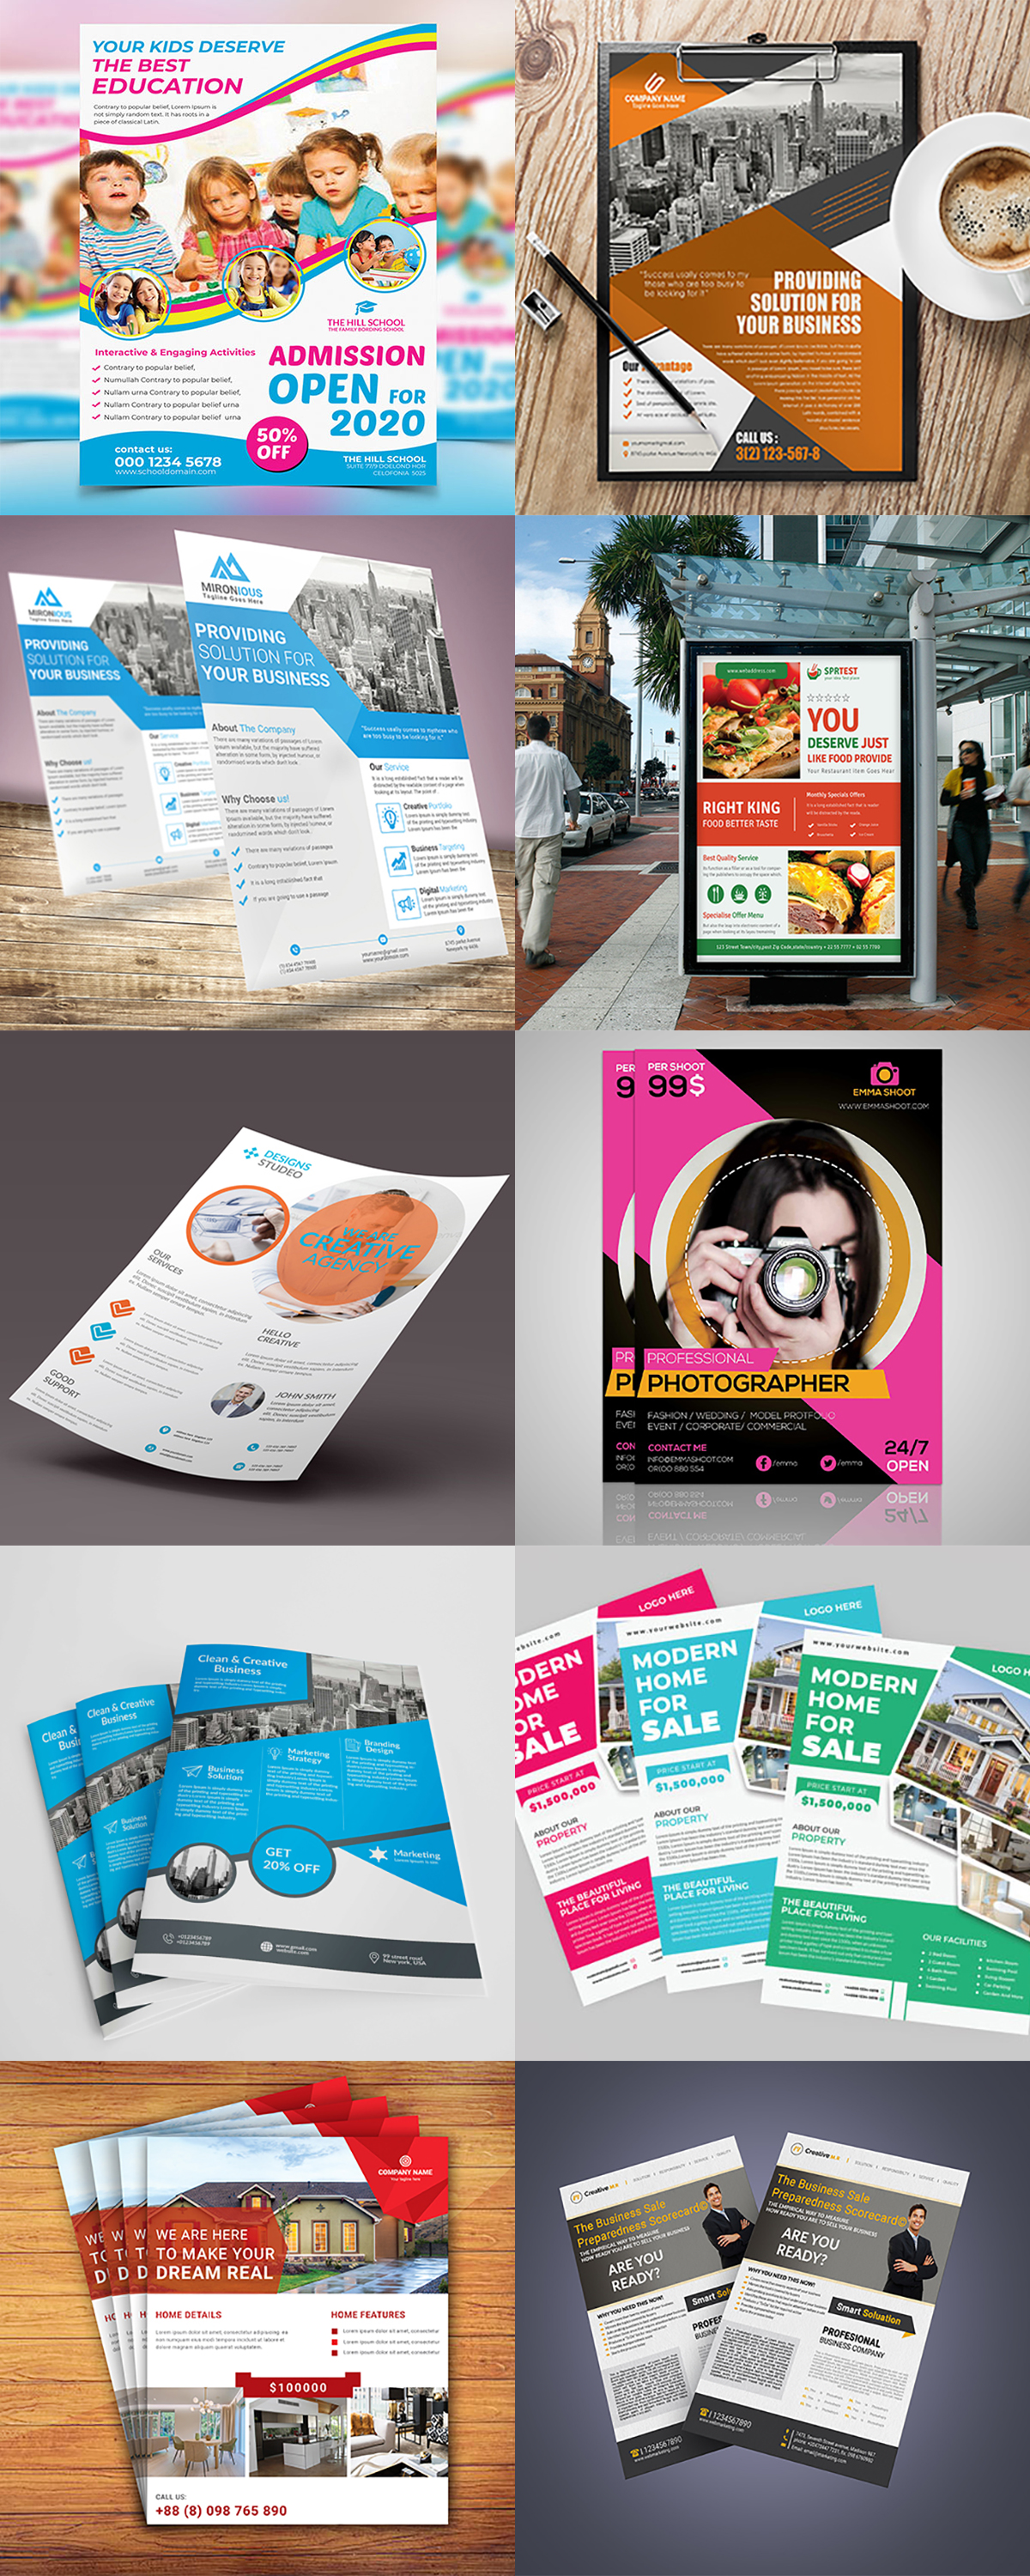 120 Concert Flyer Templates Bundle with Extended License - images 6